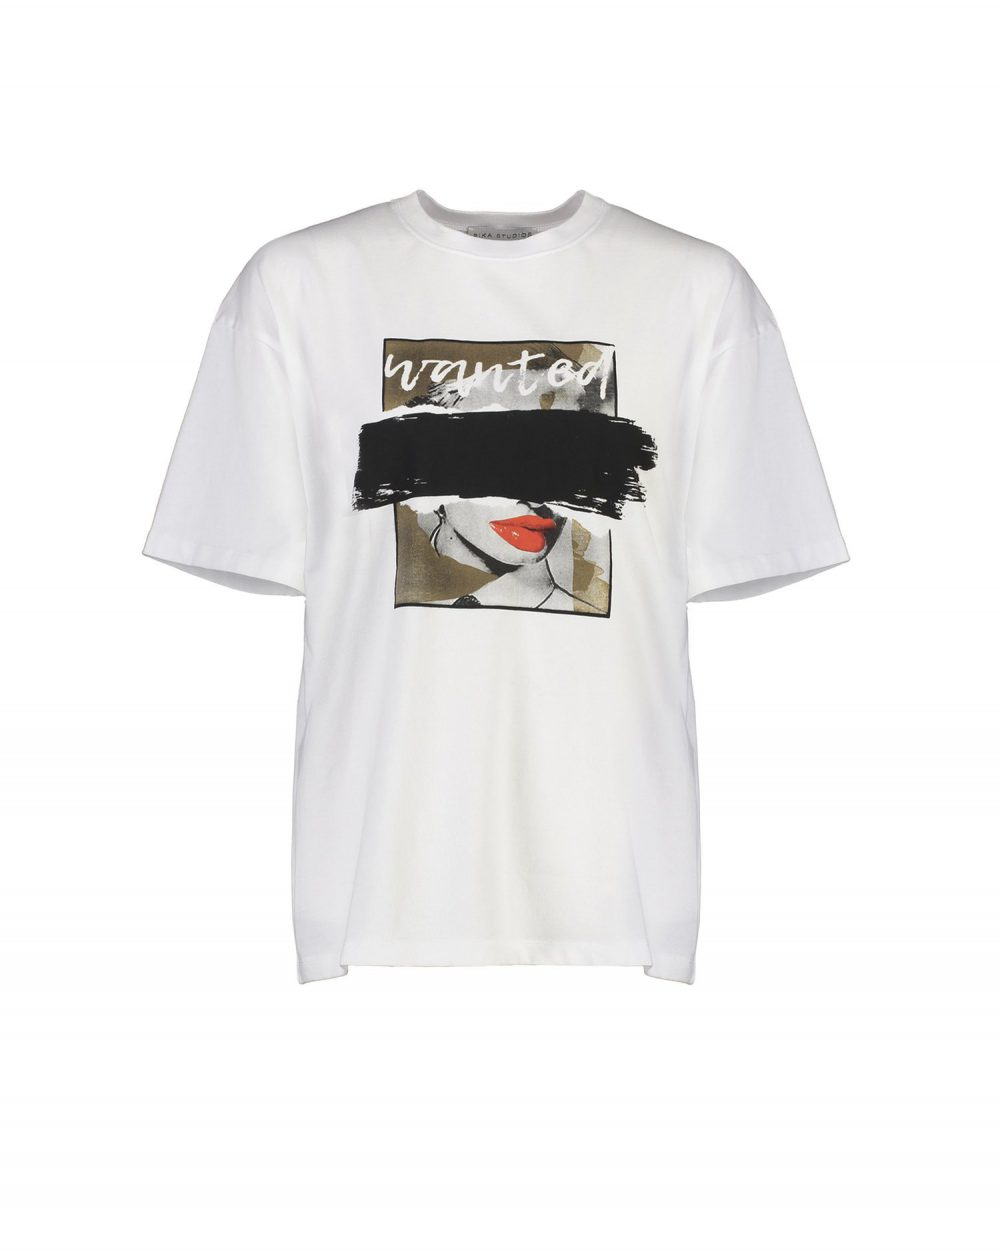 Rika Studios oversized Wanted Tee White:Black